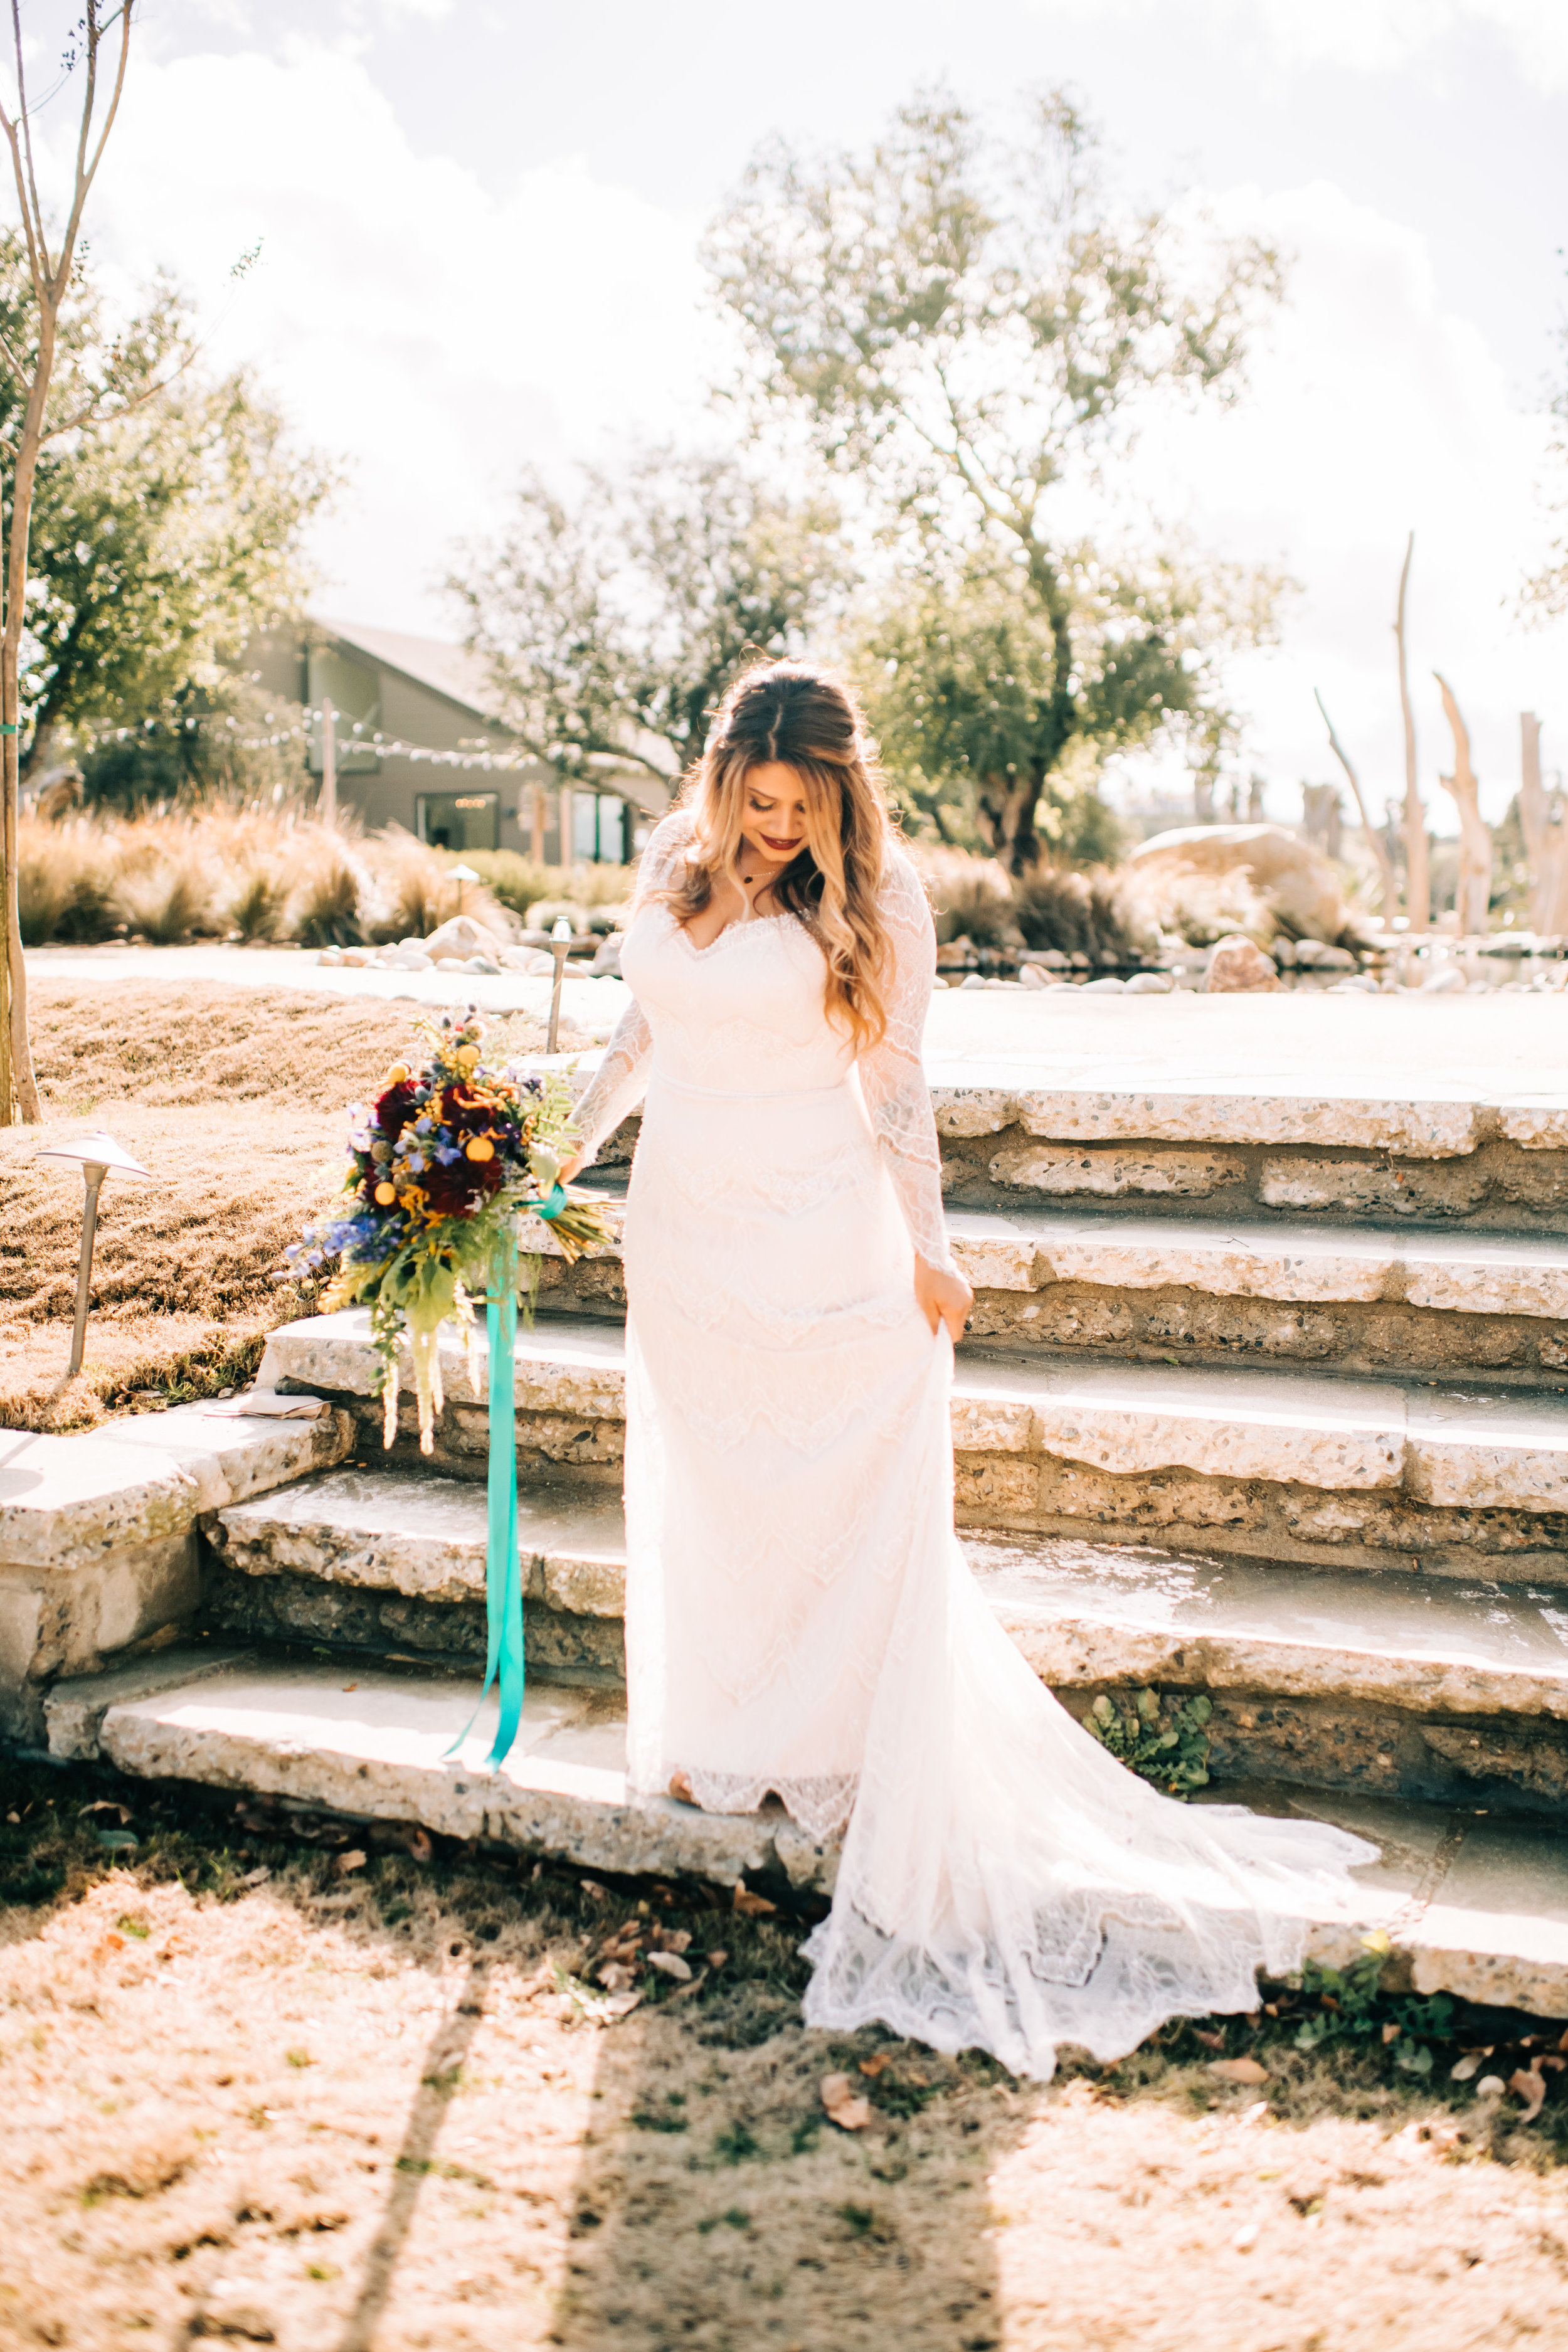 bay area nontraditional wedding photographer southern california boho wedding love light magic san francisco oakland northern california-192.jpg